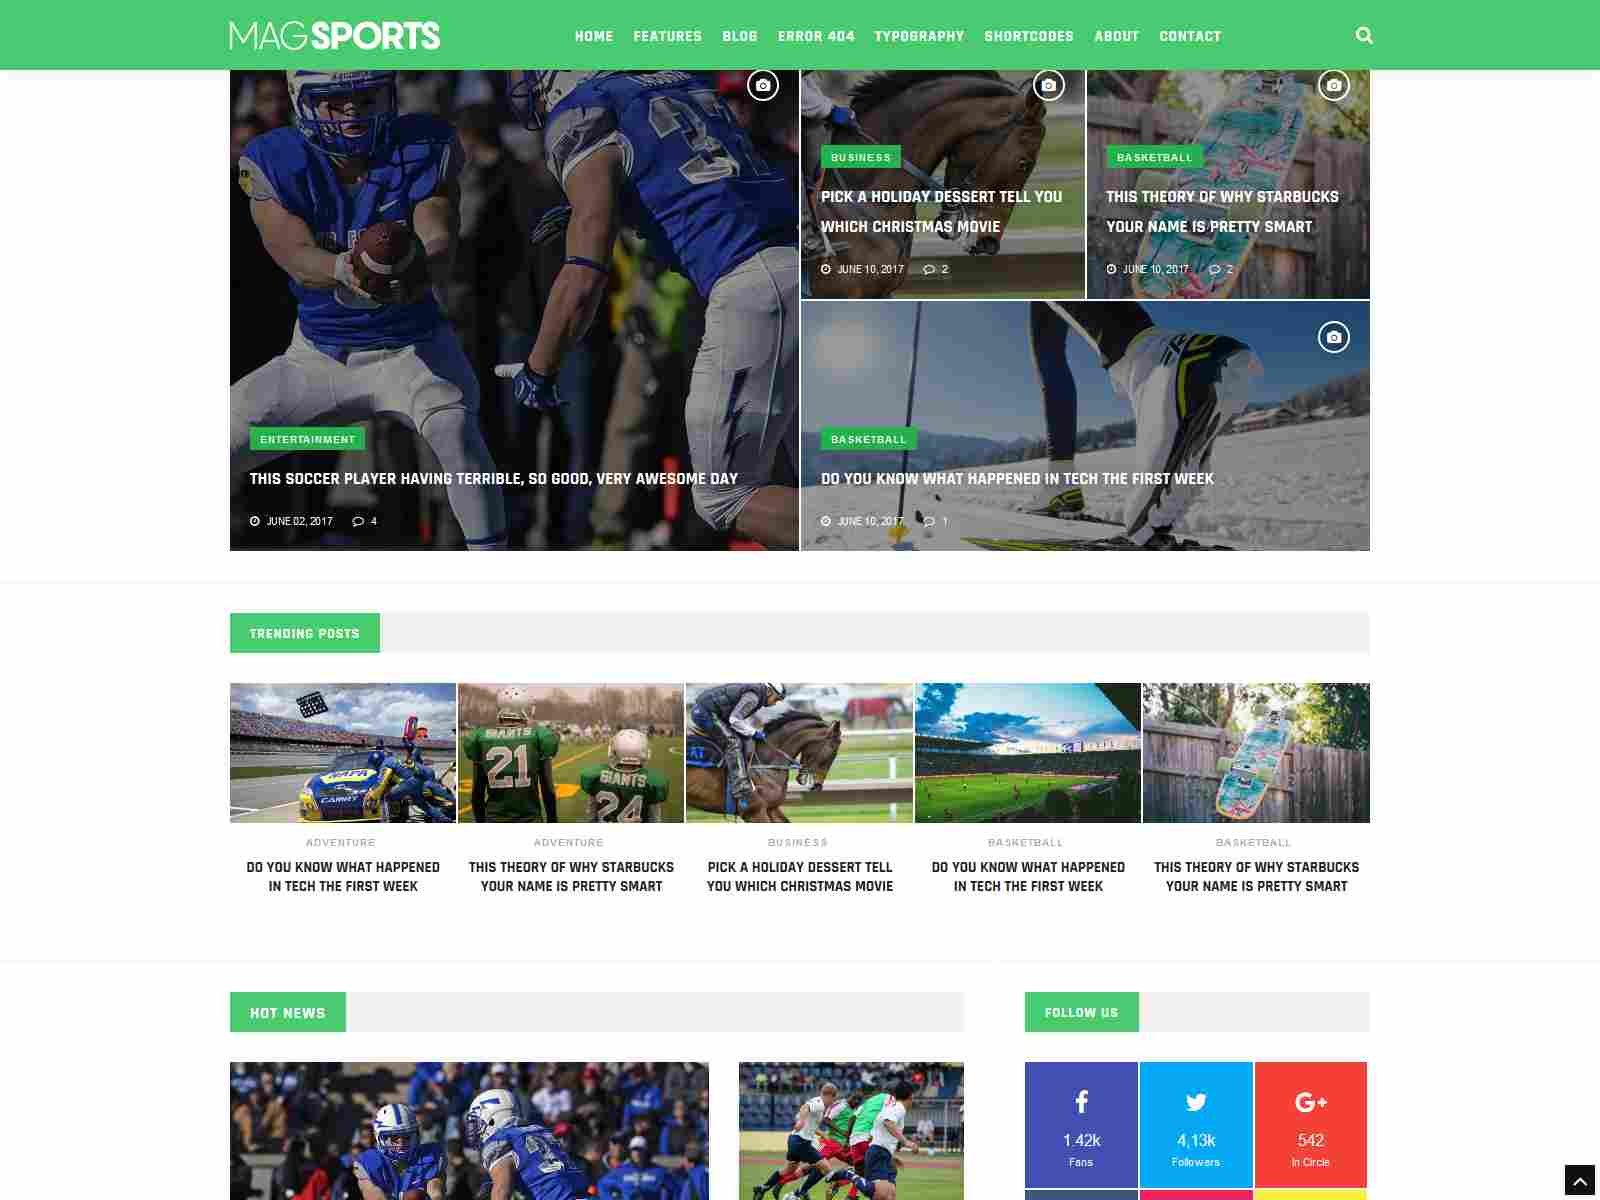 MagSports - News Editorial & Magazine Drupal 8.8 Theme